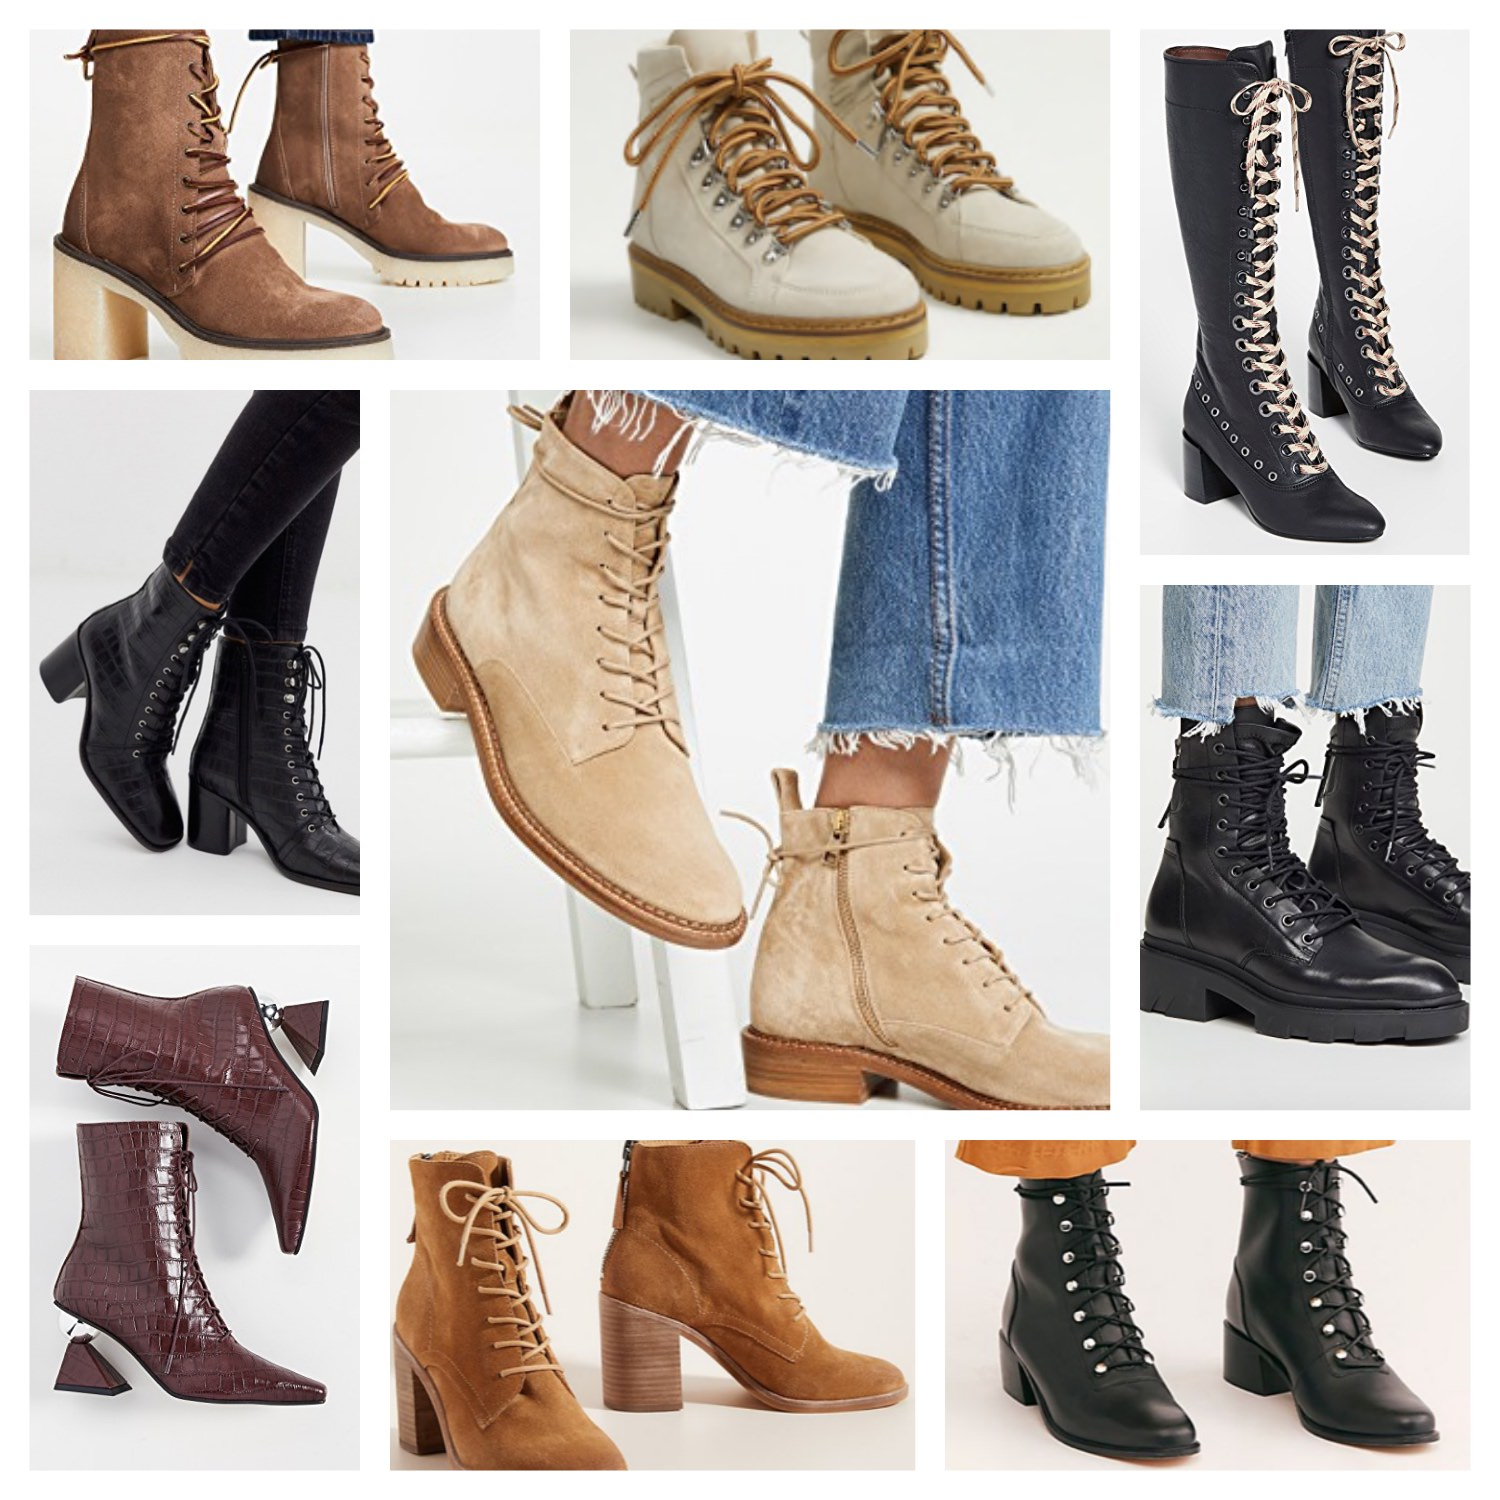 Lace Up Boots: 40 Picks   Truffles and